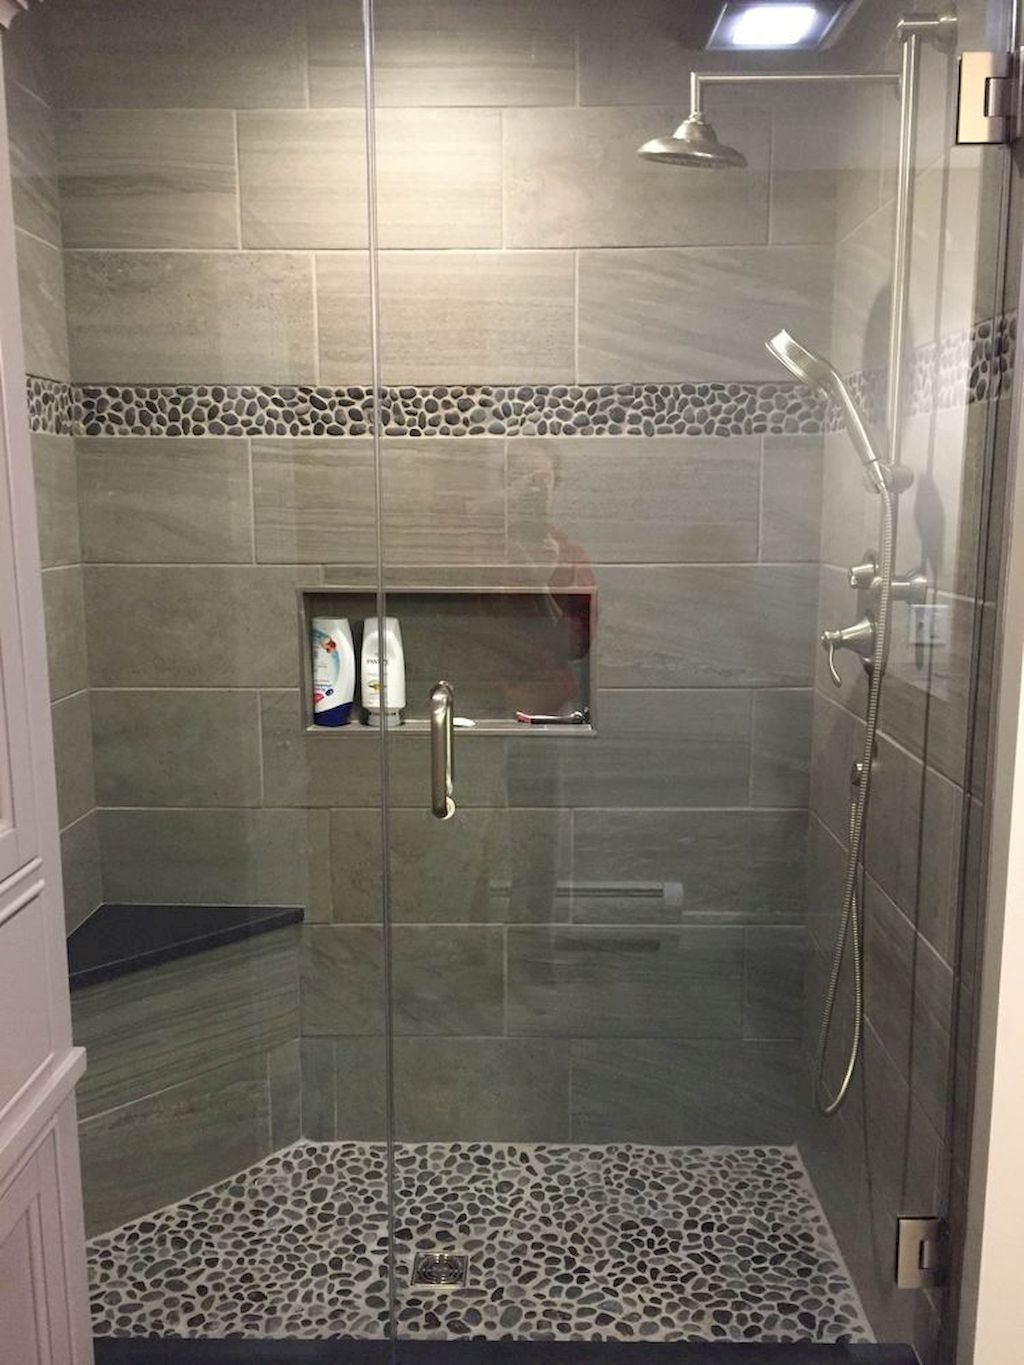 60 Luxury Small Bathroom Shower Remodel Ideas Bathroom Remodel